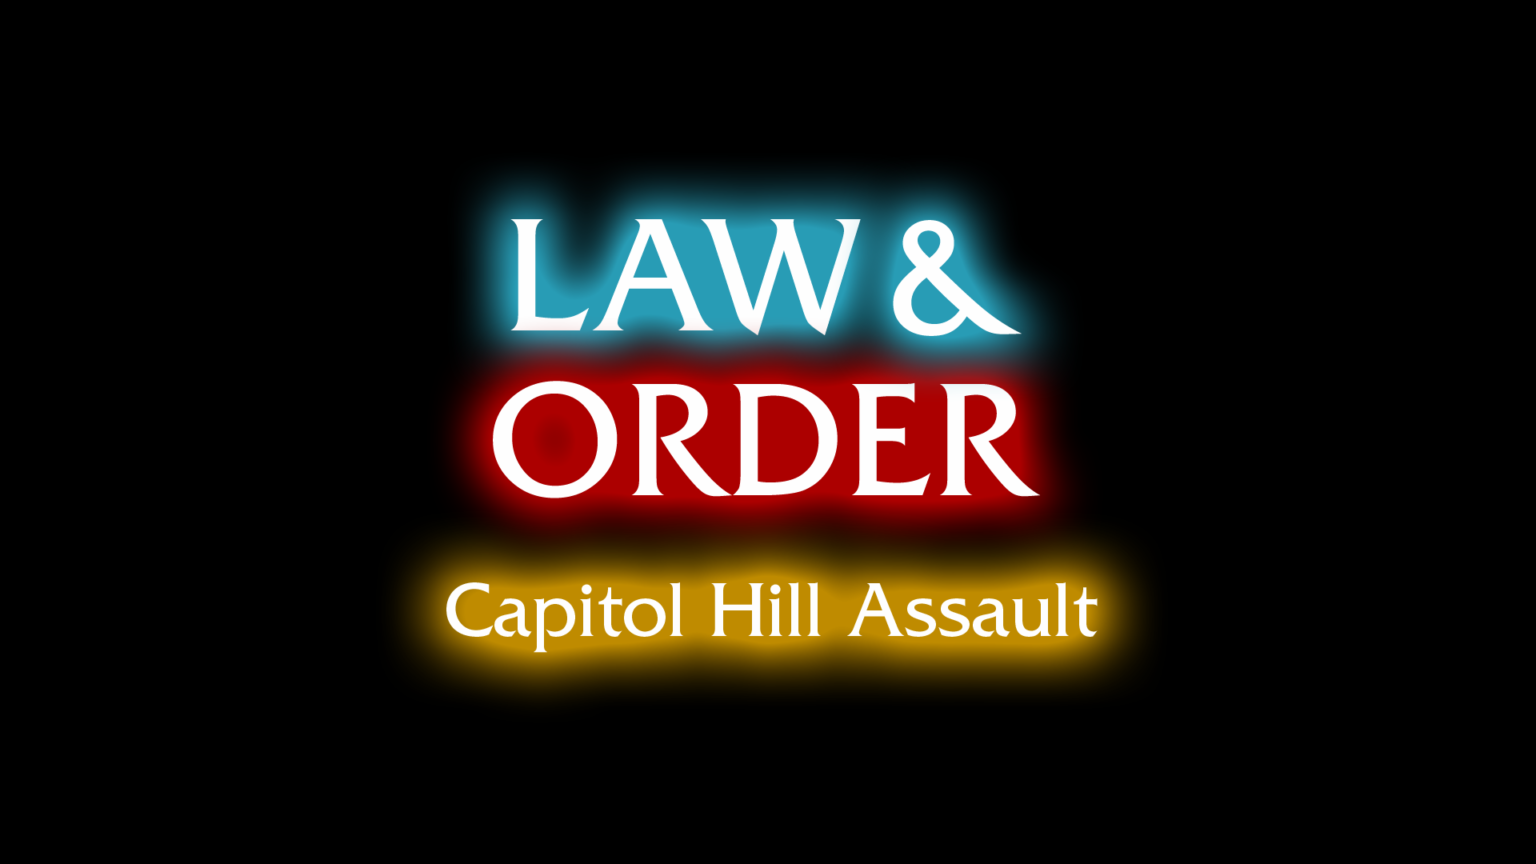 Law & Order – Capitol Hill Assault